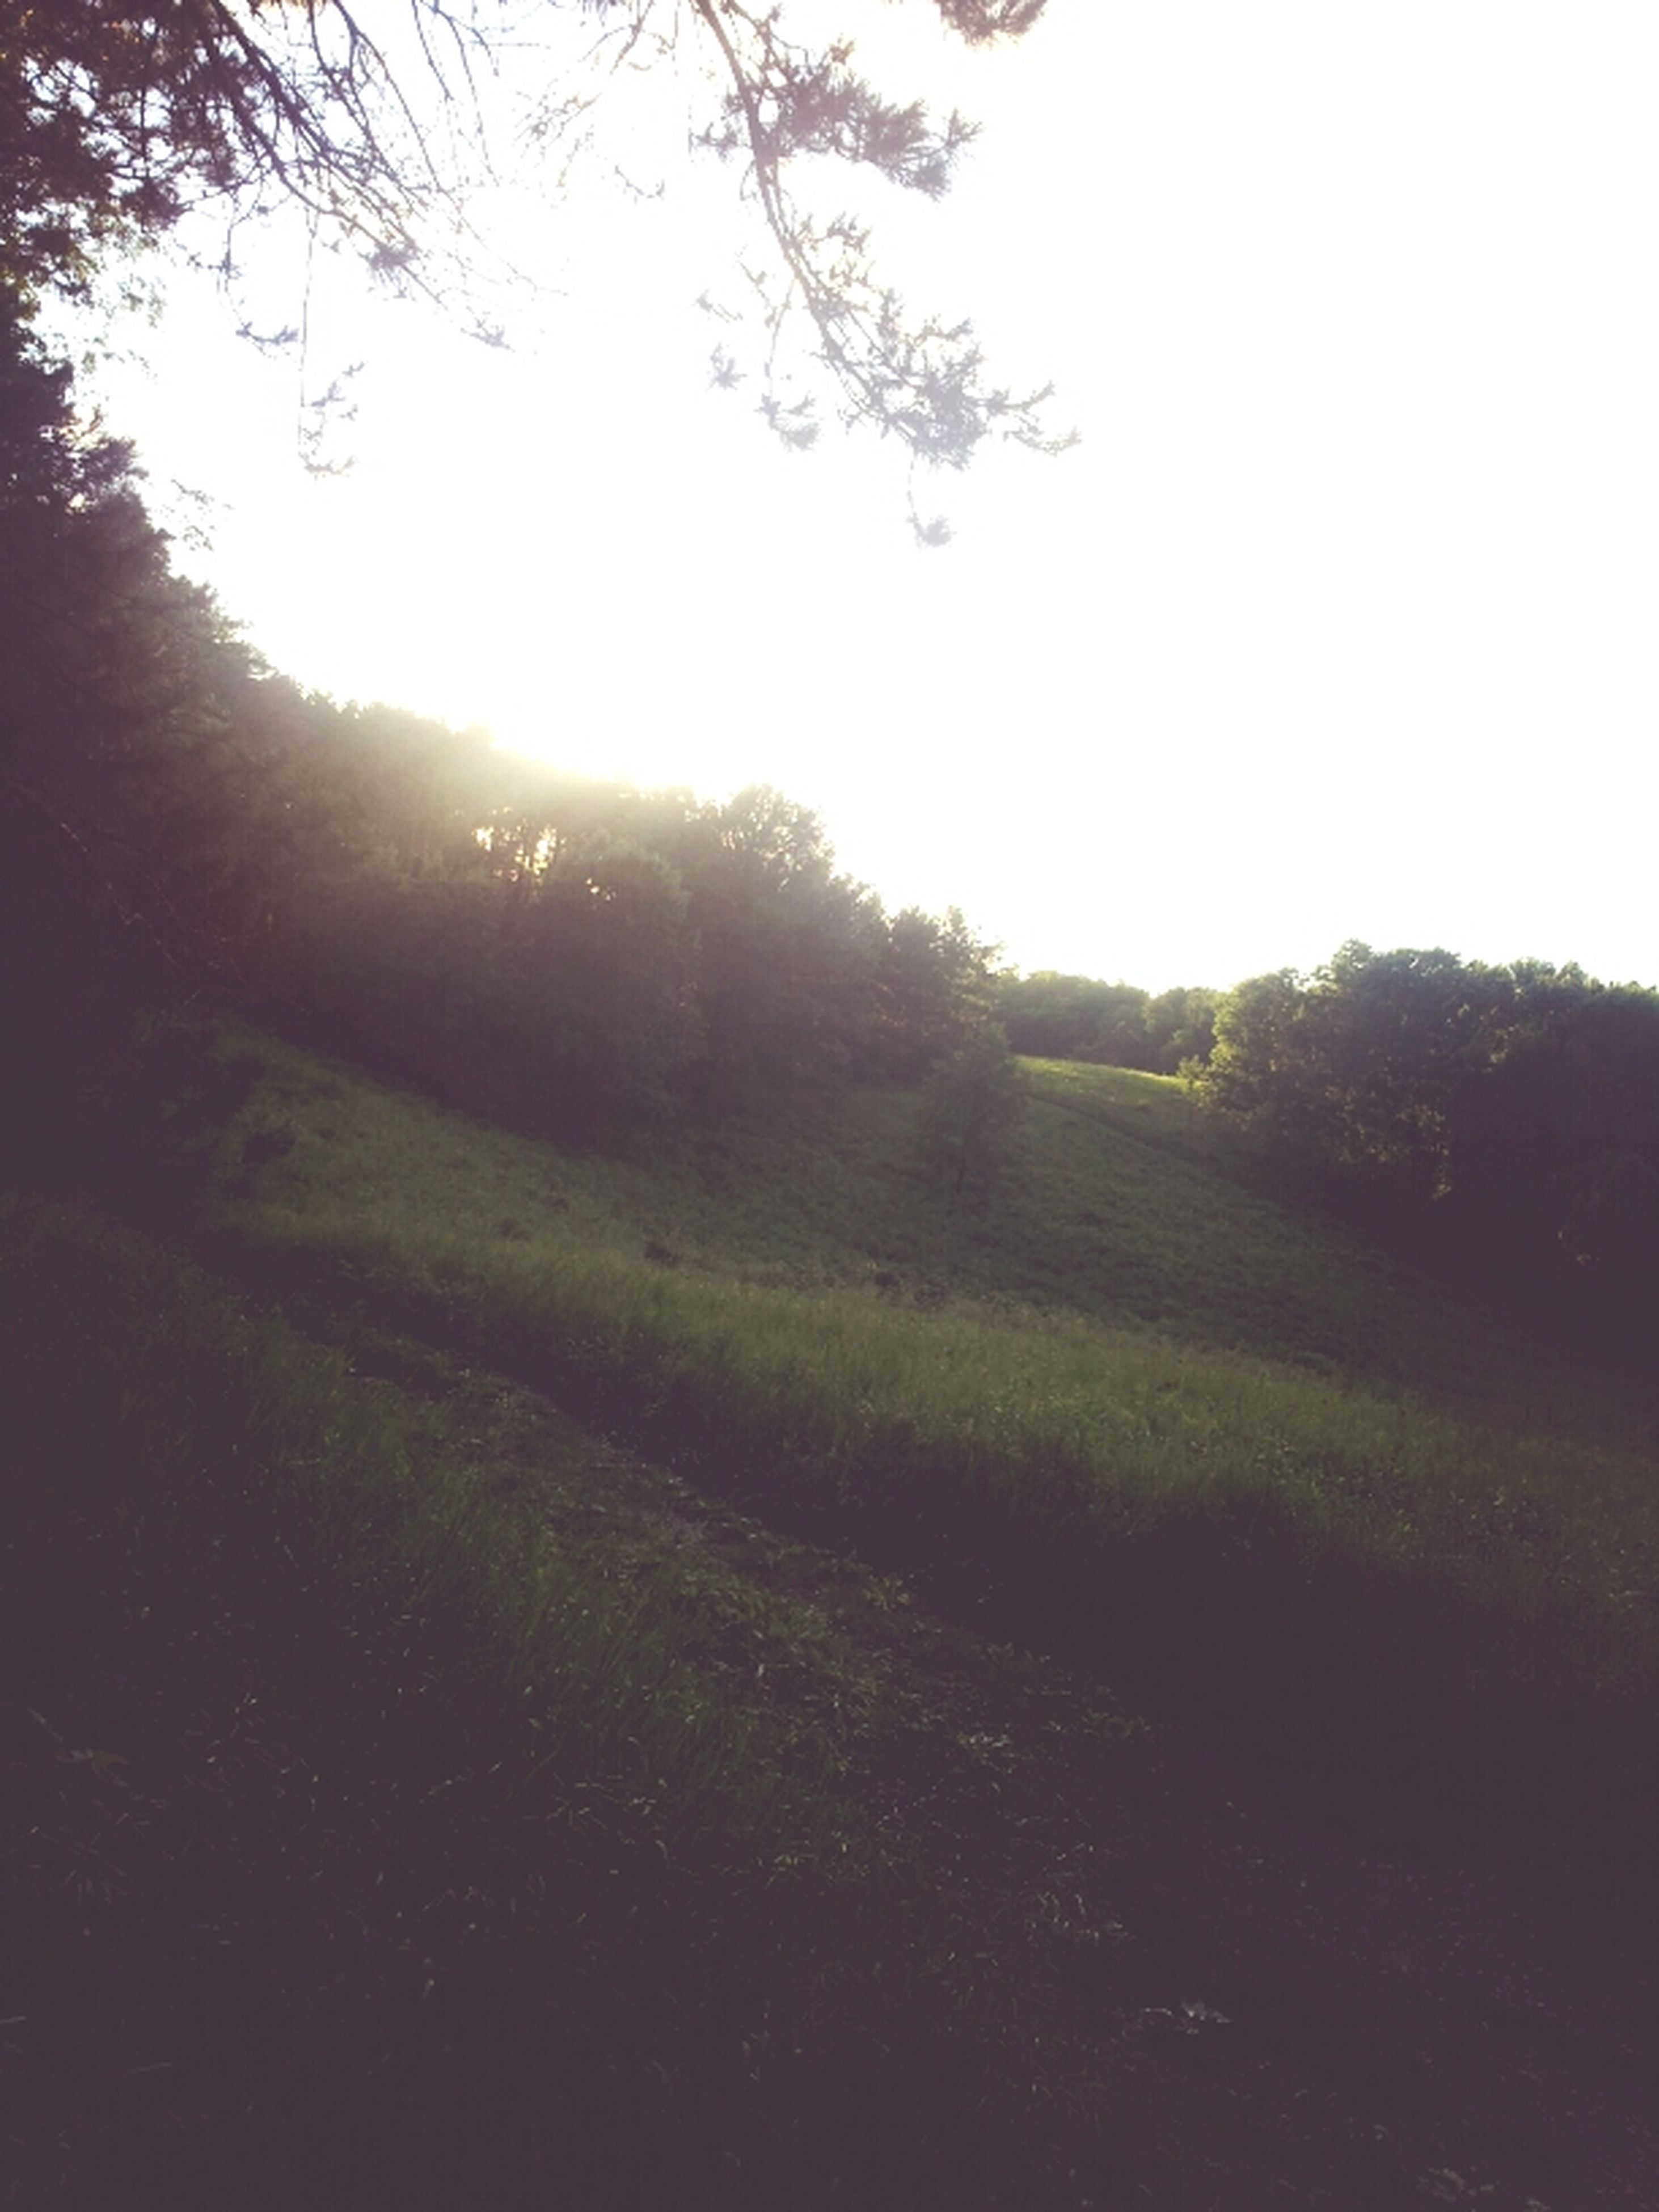 sun, tree, tranquility, sunlight, tranquil scene, lens flare, sunbeam, clear sky, field, beauty in nature, nature, growth, landscape, grass, scenics, sunset, sky, silhouette, grassy, no people